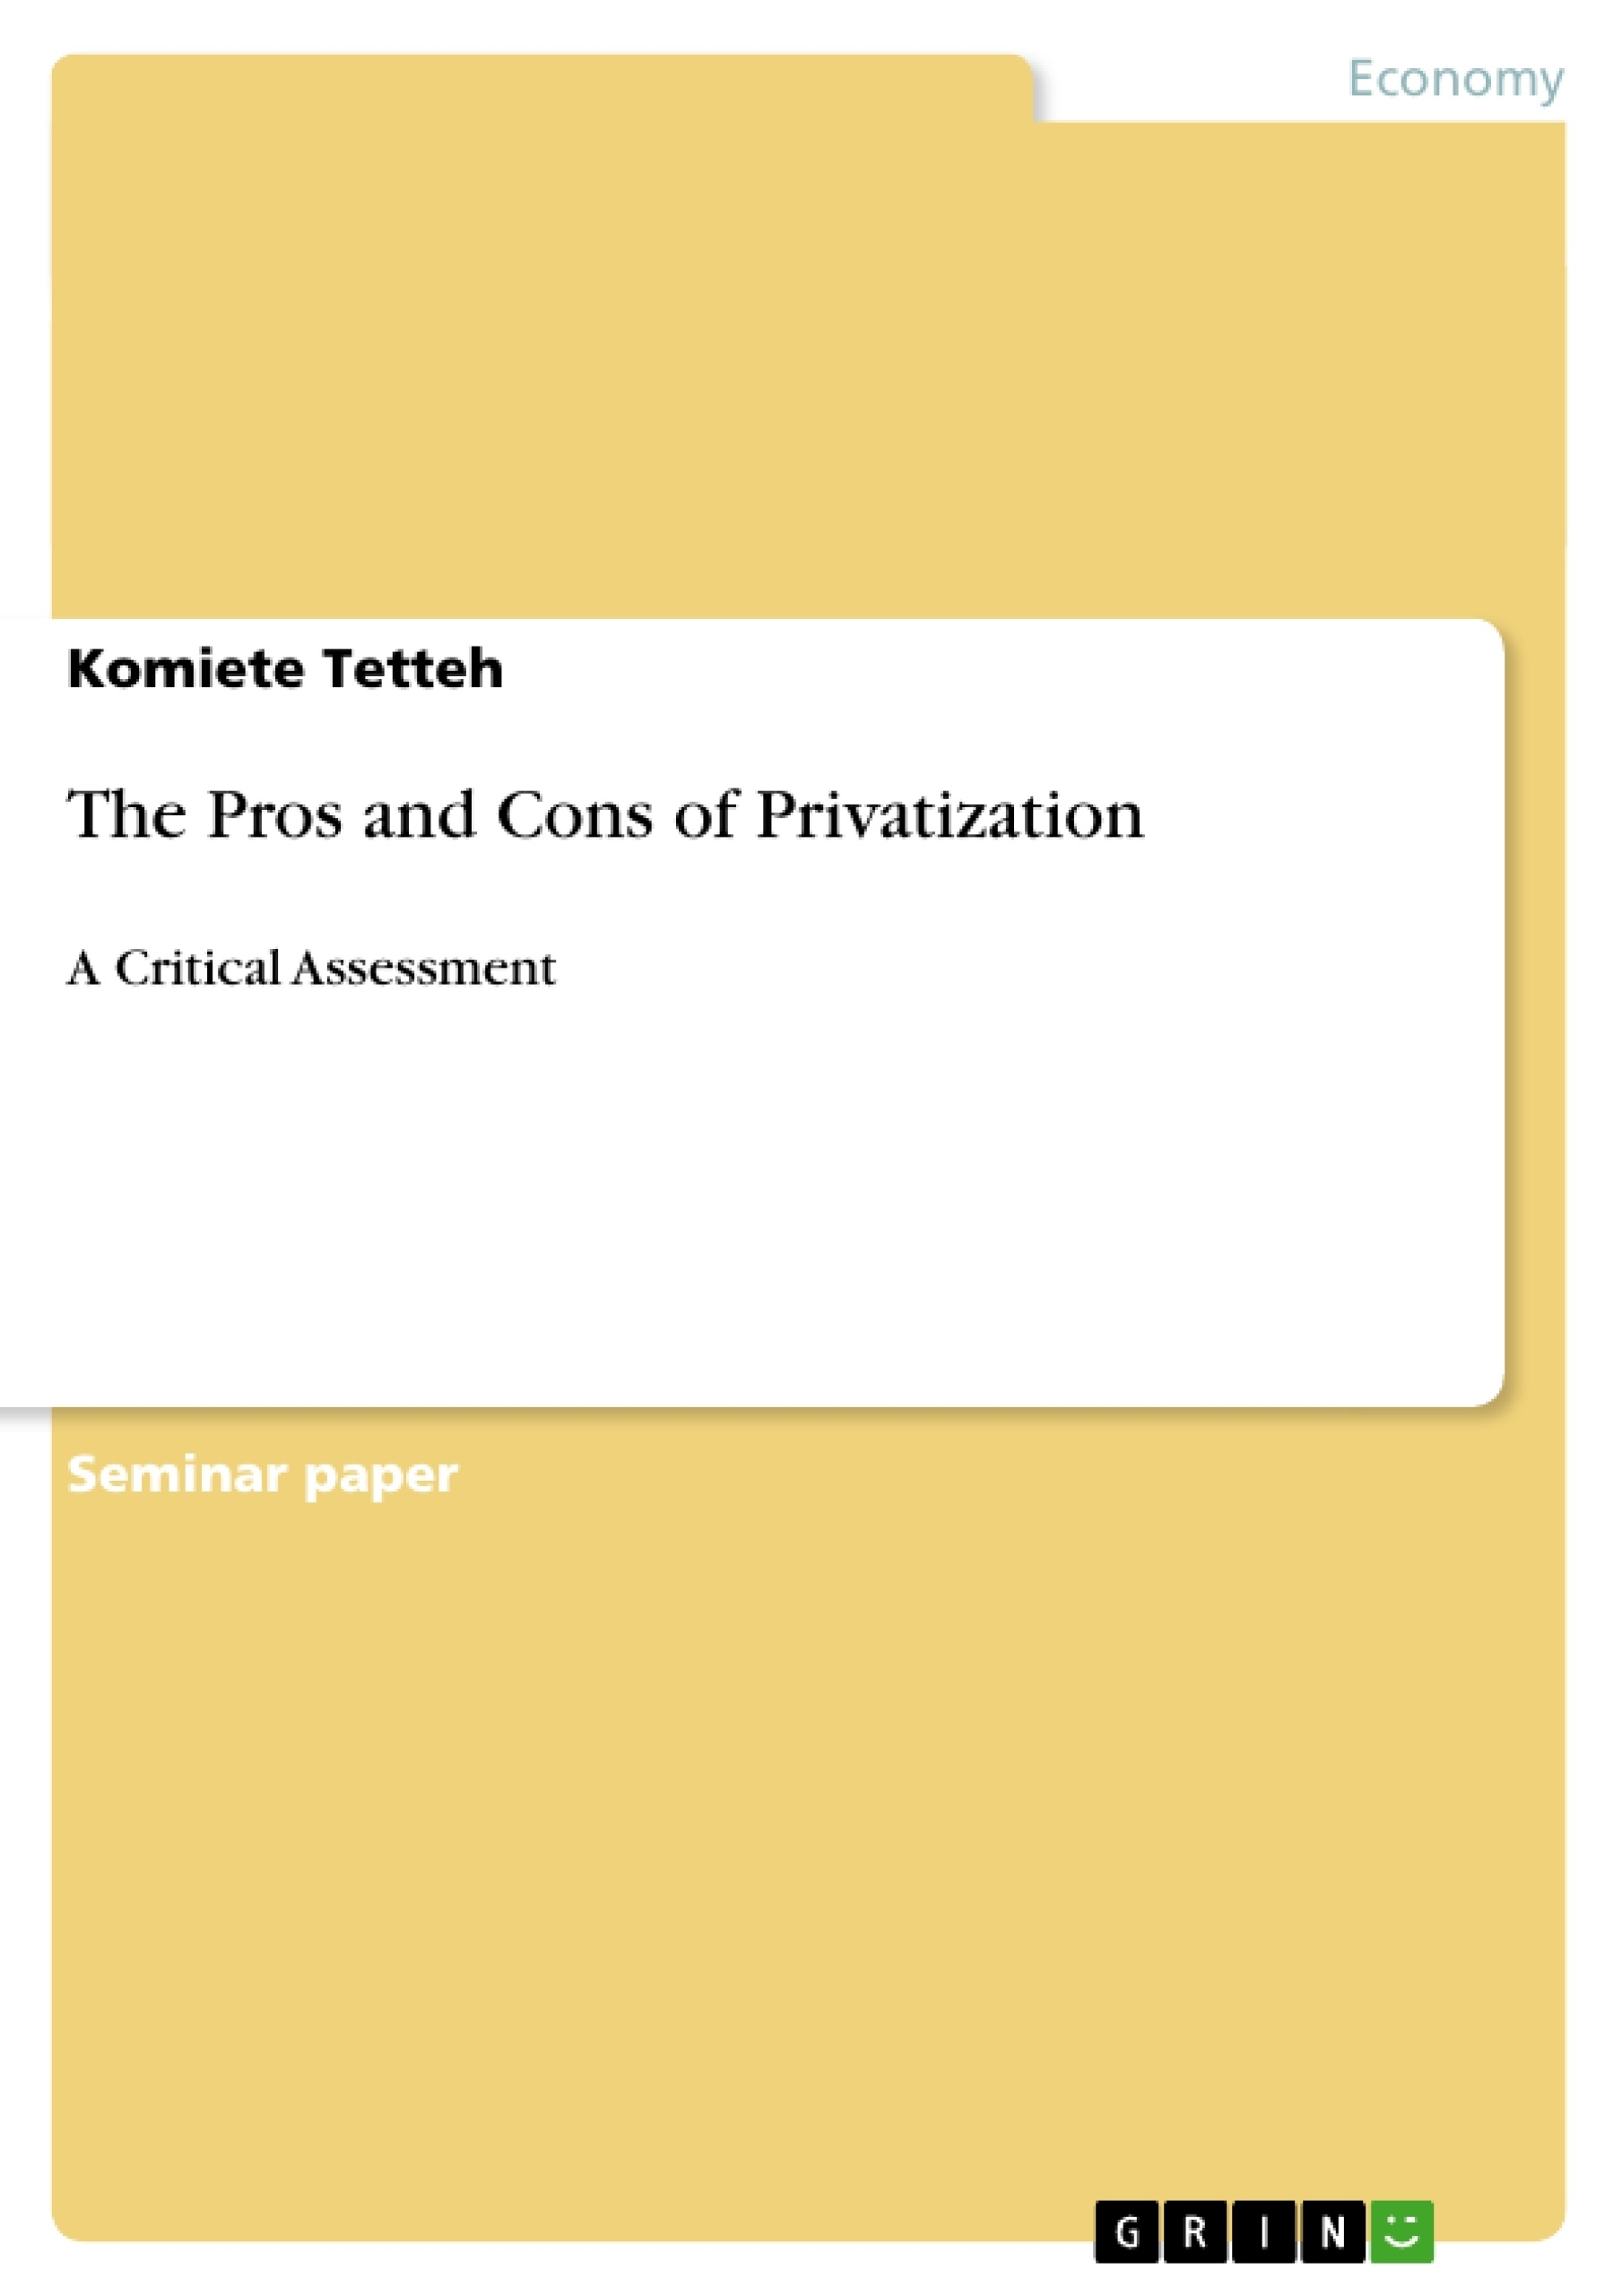 the pros and cons of privatization publish your master s thesis the pros and cons of privatization publish your master s thesis bachelor s thesis essay or term paper